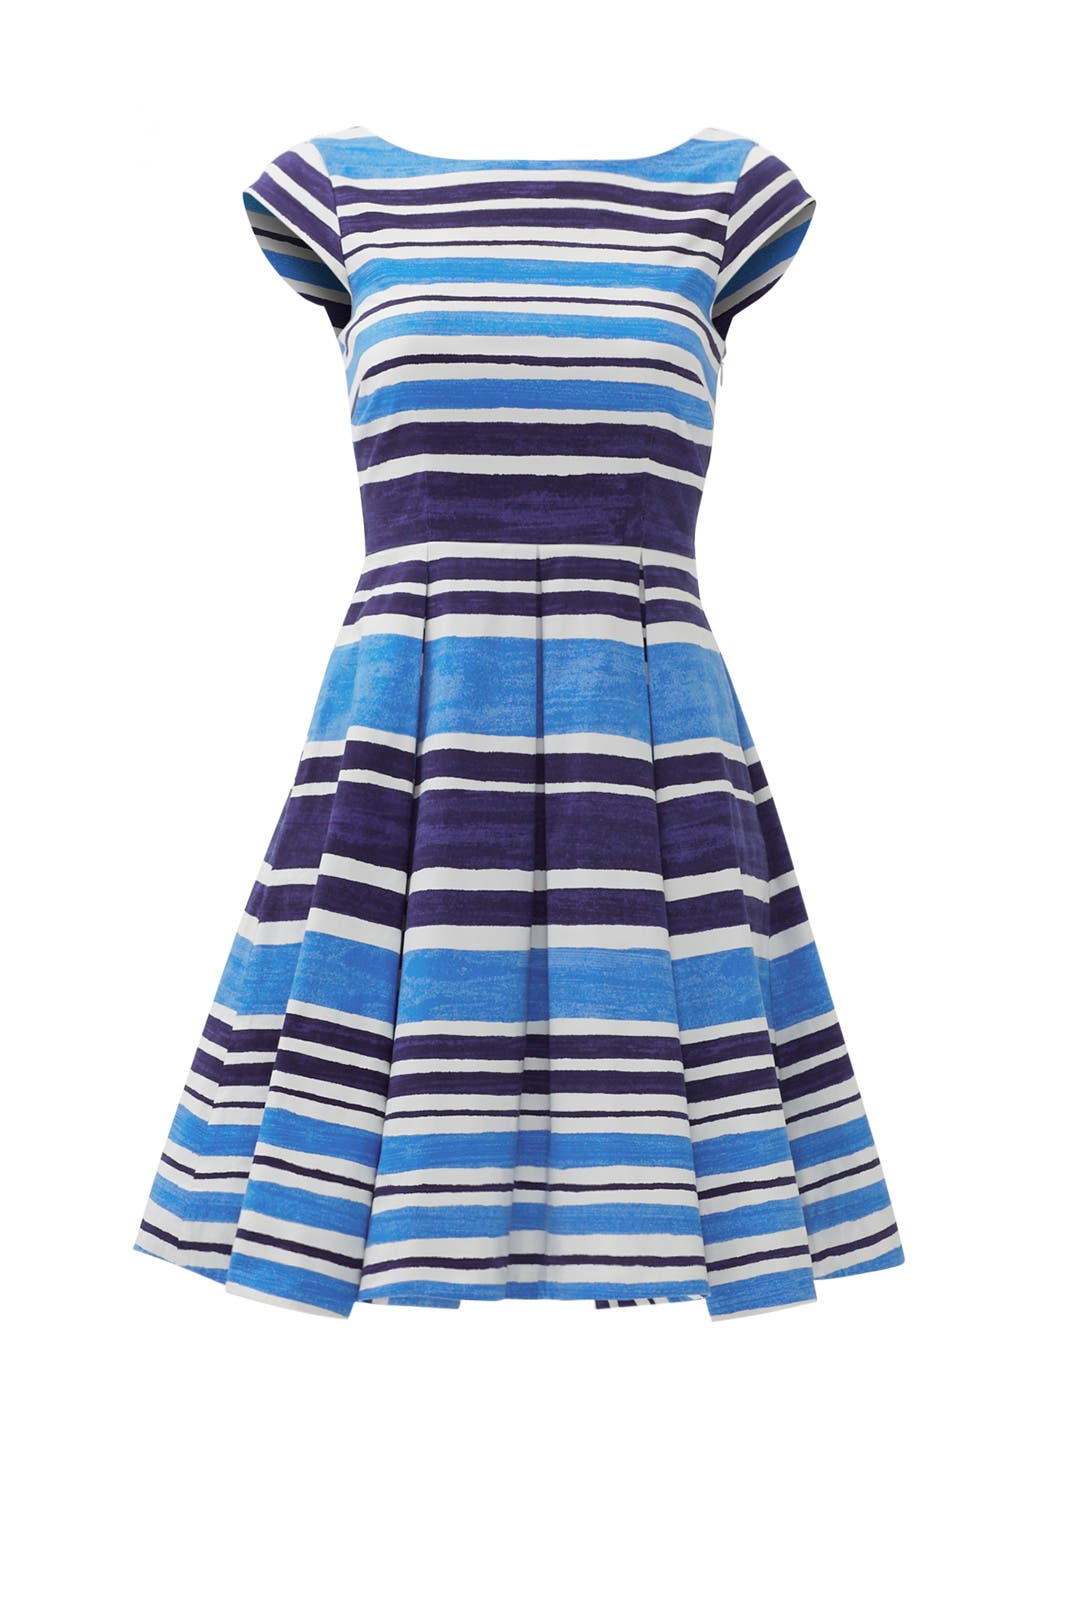 Mariella Dress by kate spade new york